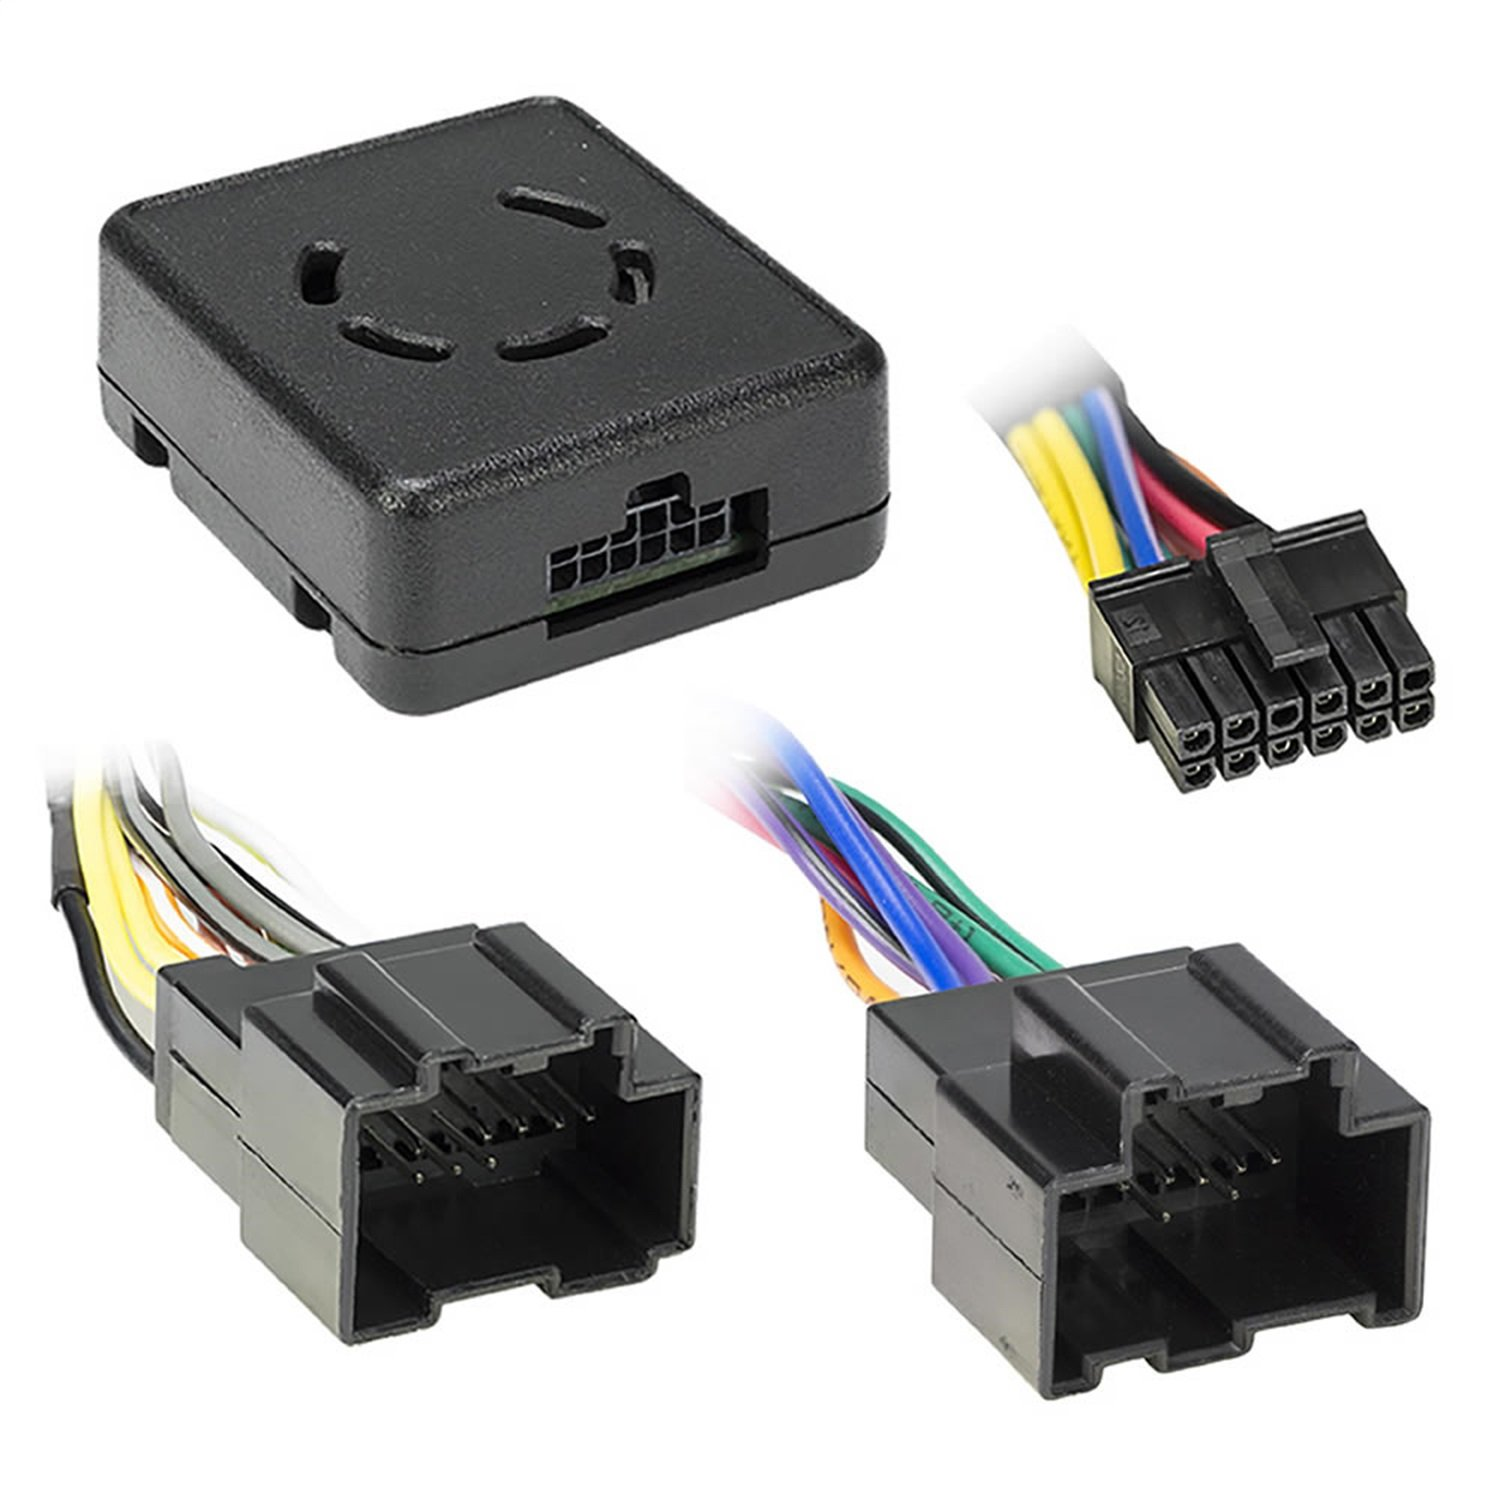 Amazon.com: Metra Axxess GM LAN Data Bus Interface with Chime Retention for  Select Chevrolet Impala and Silverado Vehicles: Car Electronics